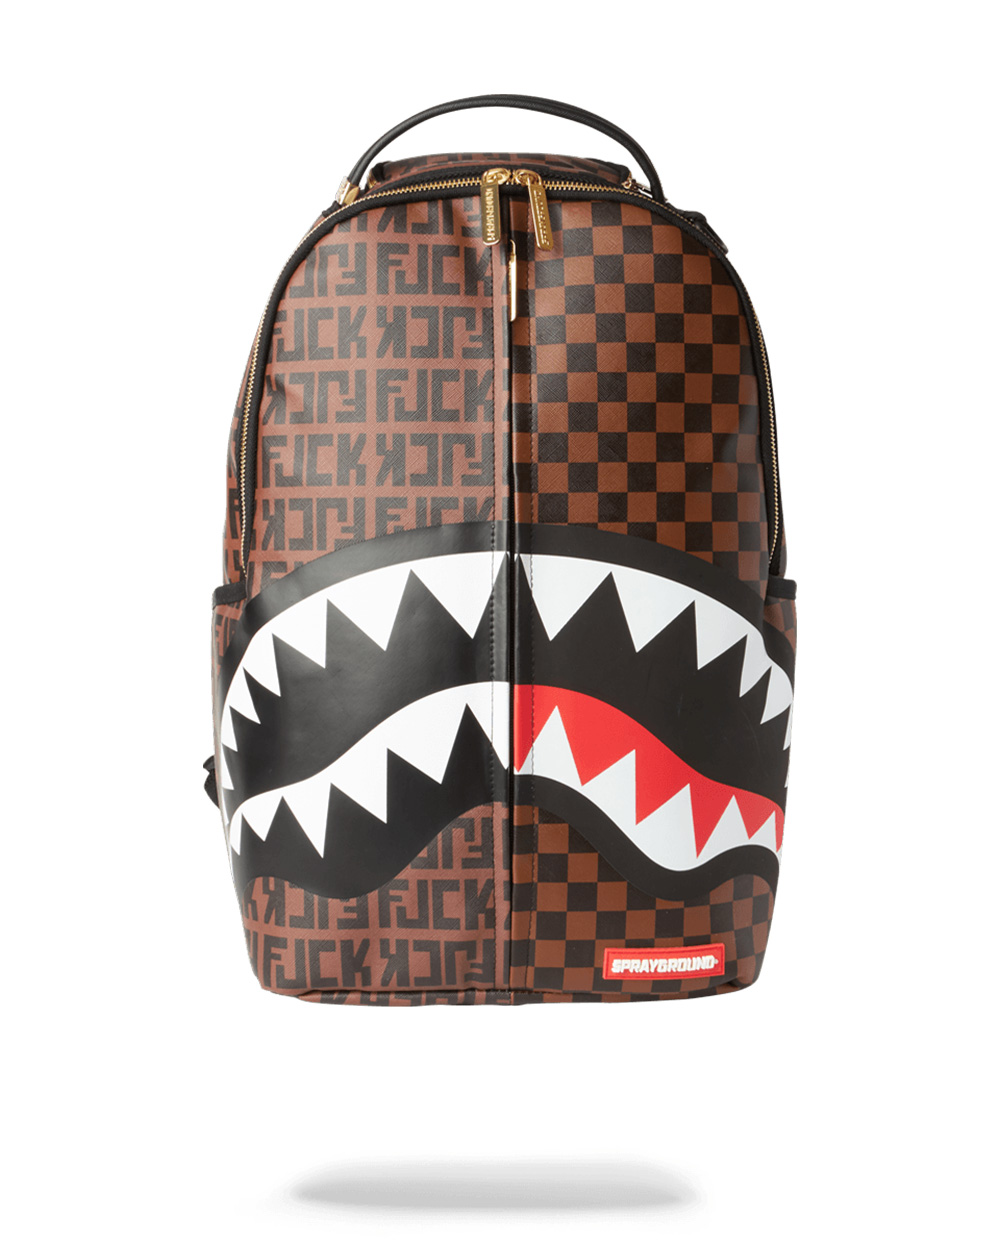 Sprayground Split The Check Backpack